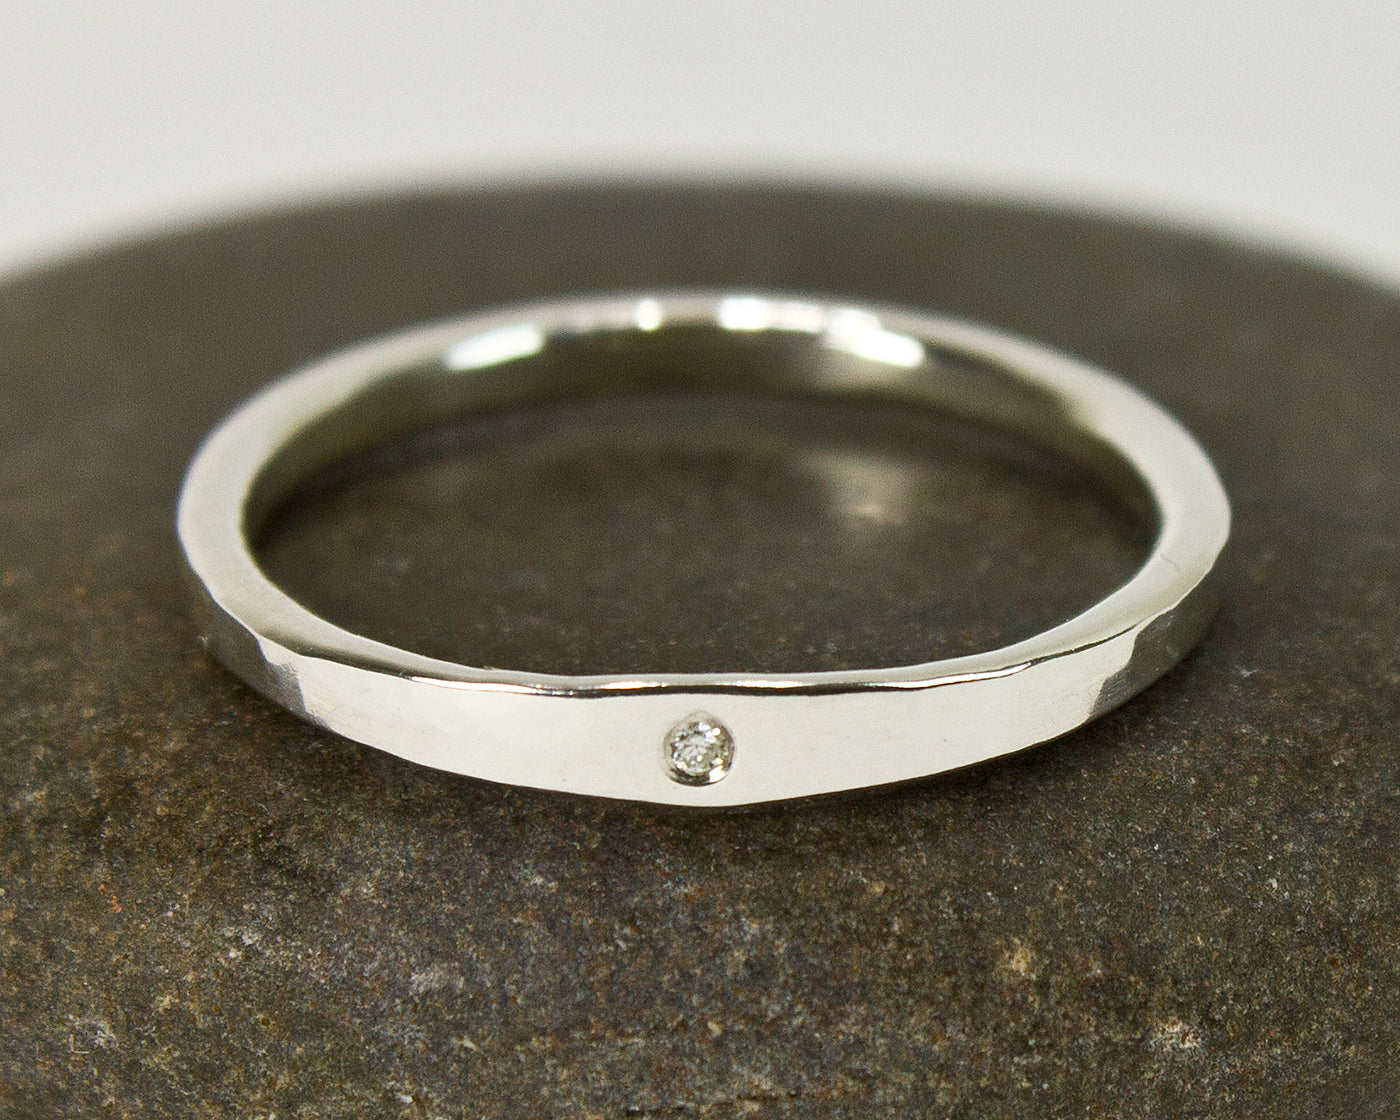 Minimalist Engagement Ring featured on Wedding Know-How